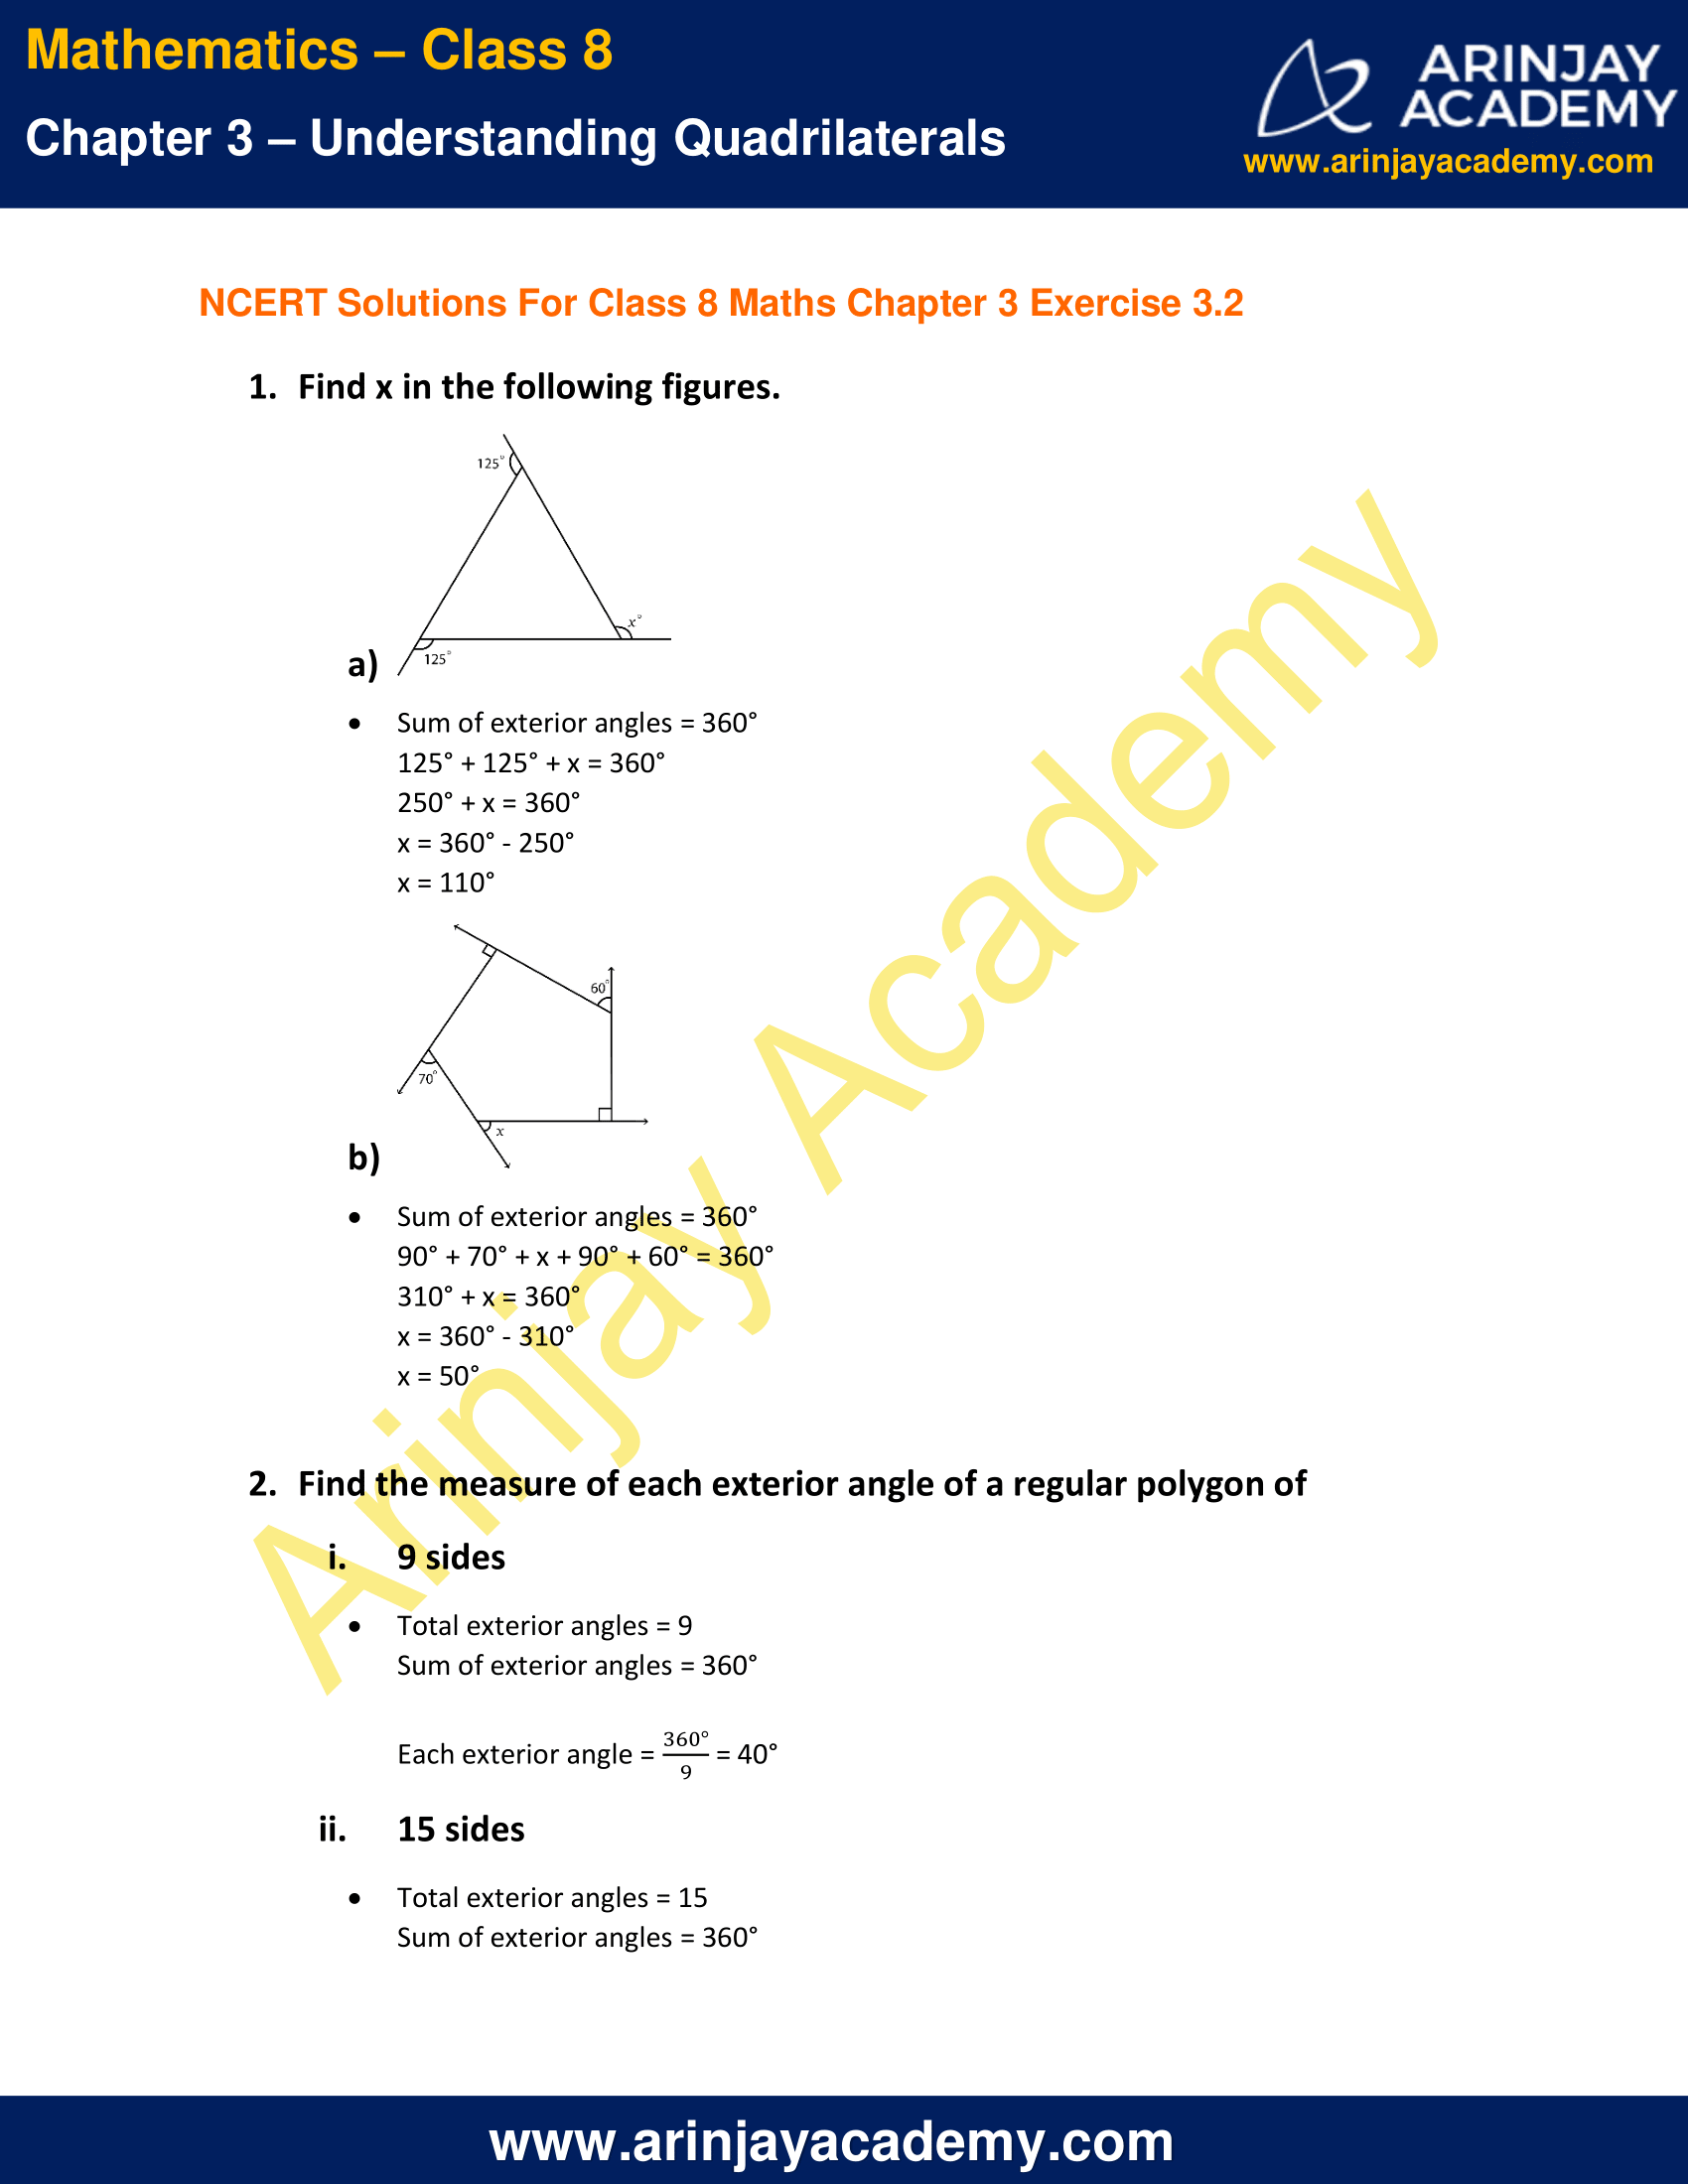 NCERT Solutions for Class 8 Maths Chapter 3 Exercise 3.2 image 1